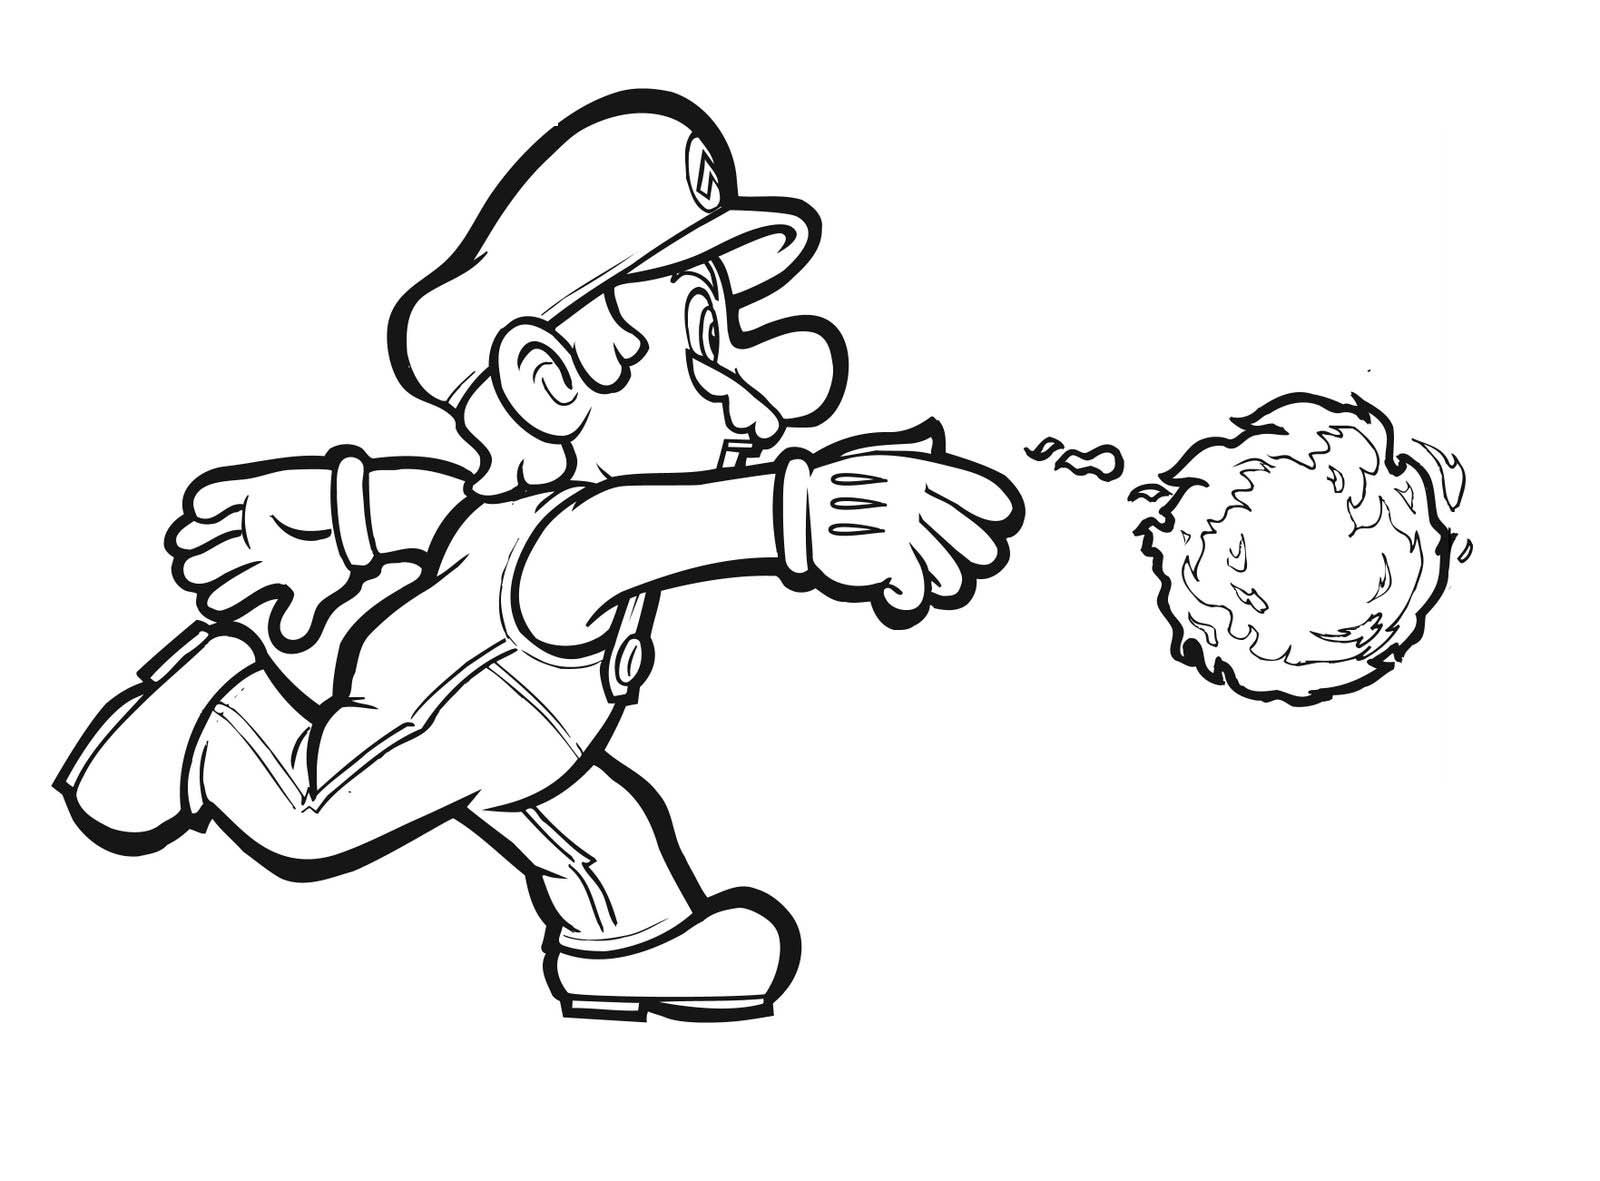 Super Mario Printable Coloring Pages Free Coloring Sheets Super Mario Coloring Pages Mario Coloring Pages Coloring Pages